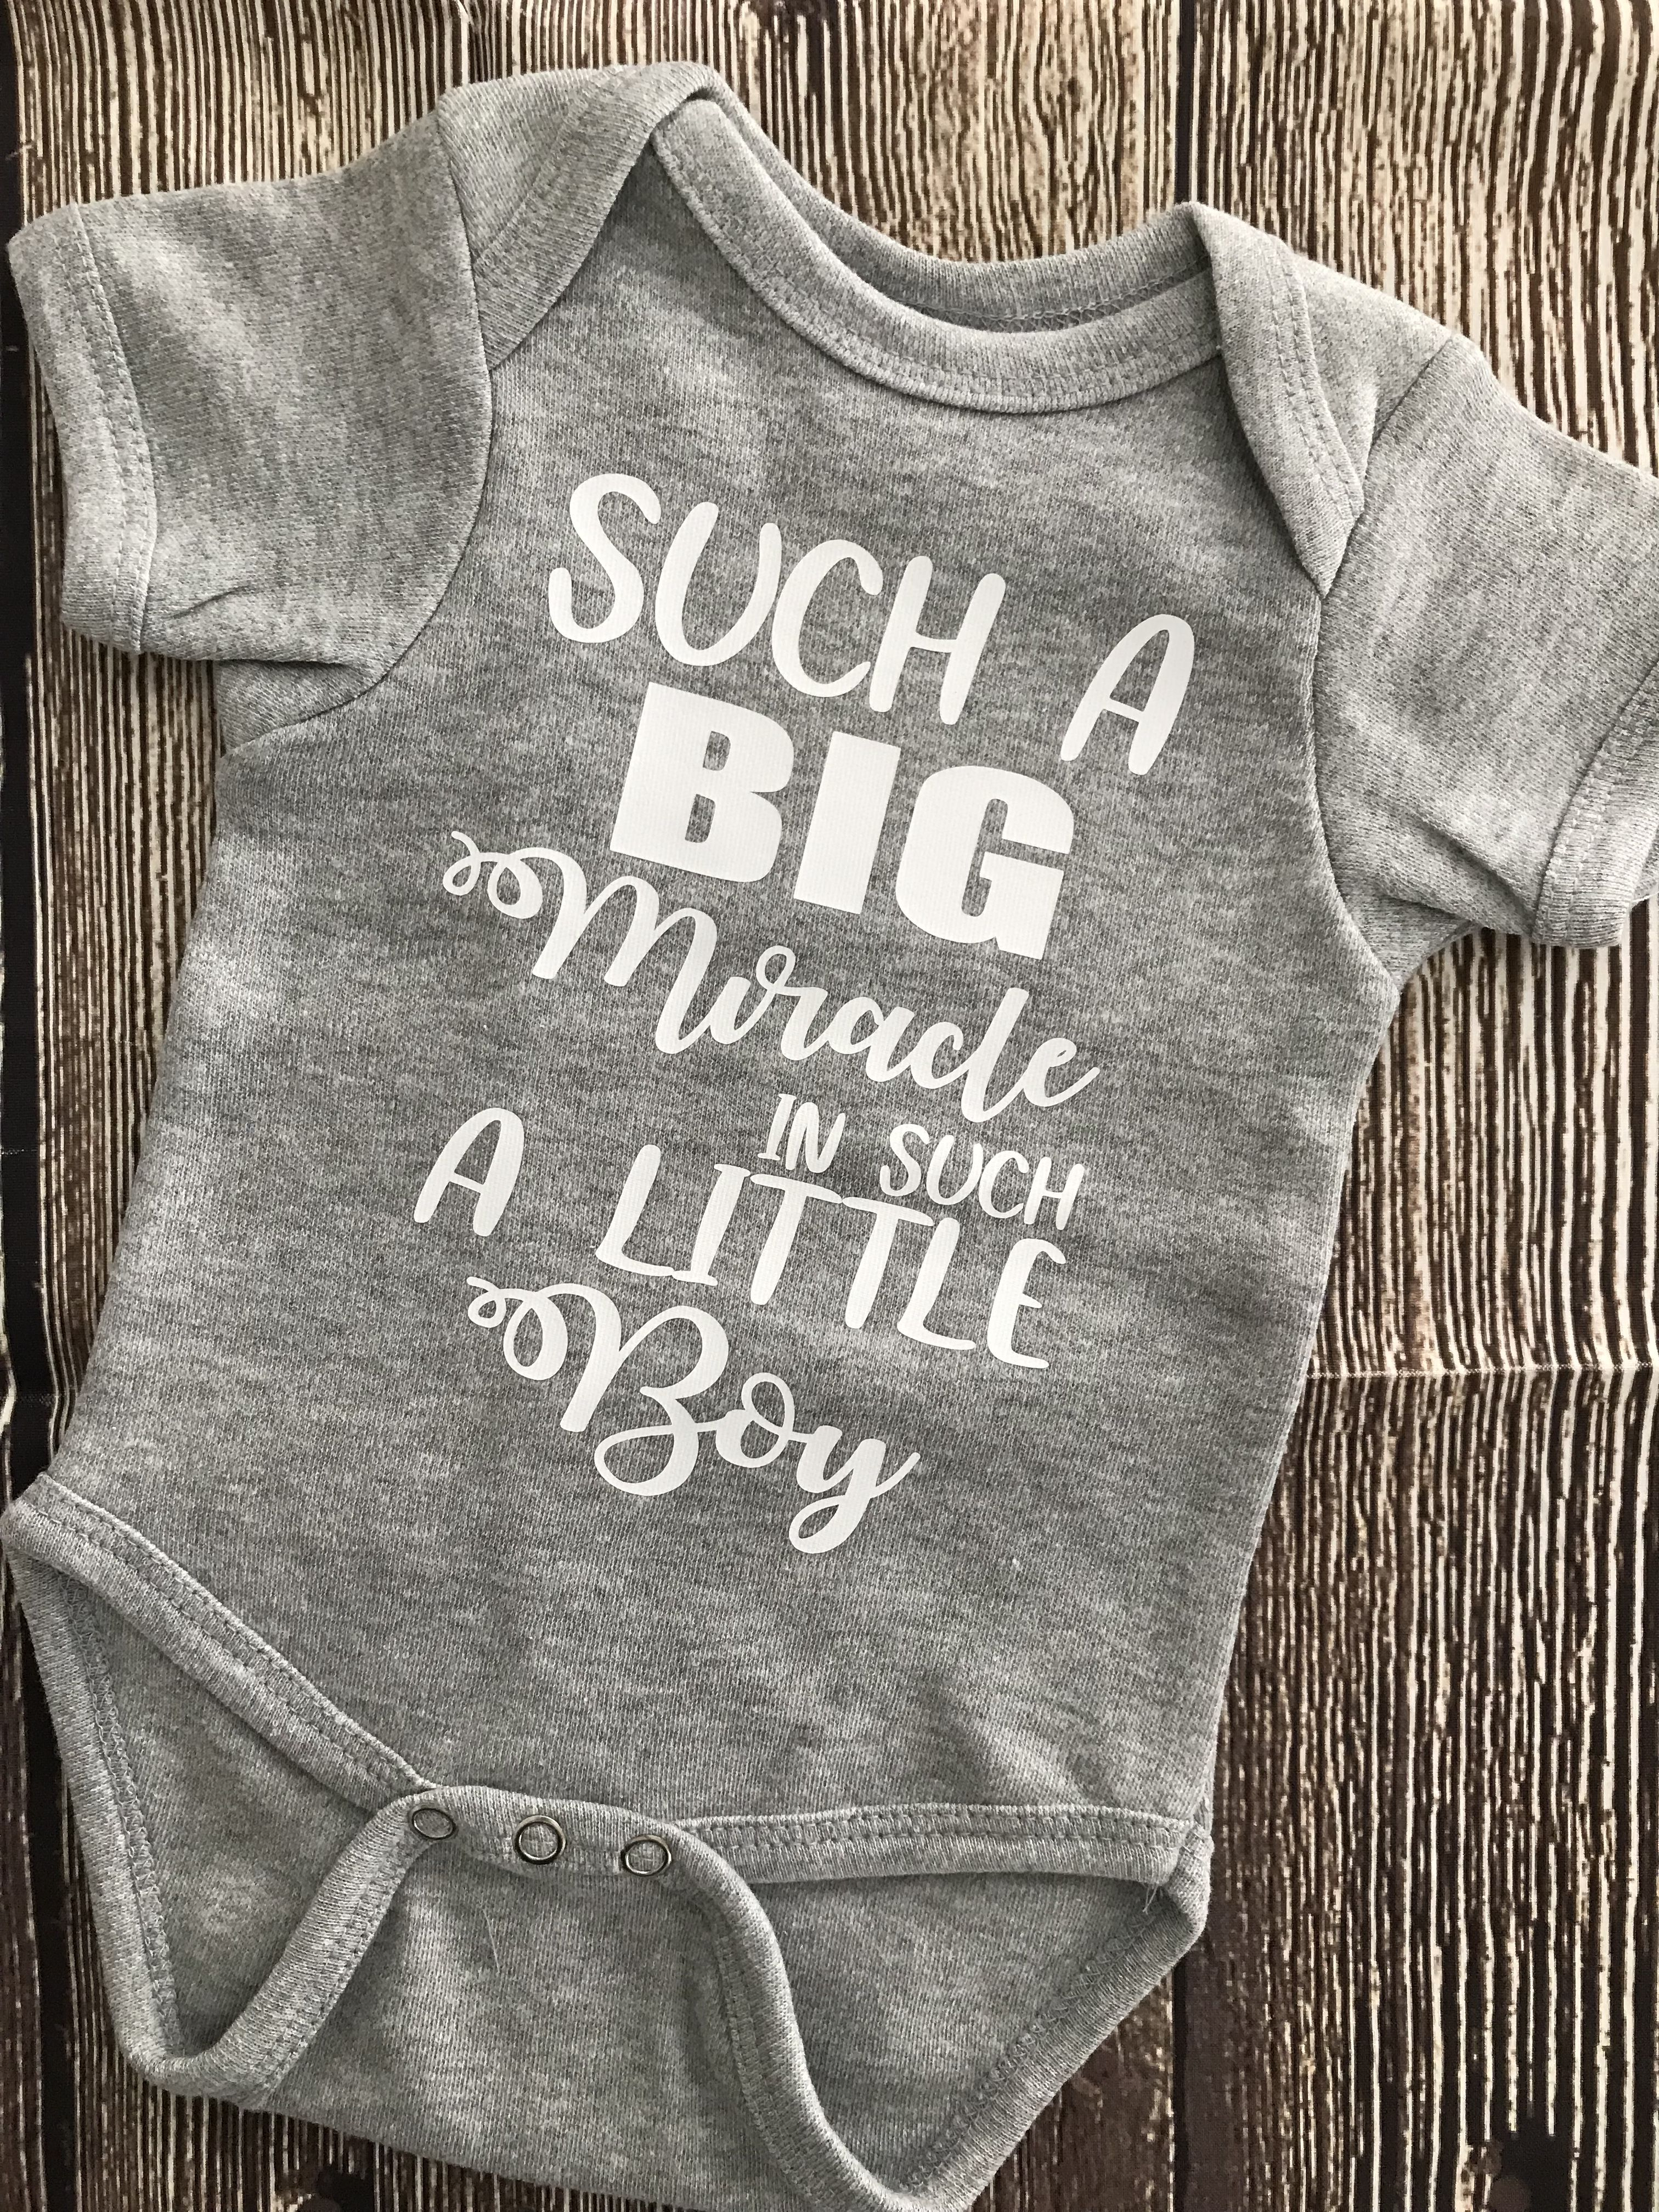 8cf72c0d8 Such a Big Miracle in such a Little Boy Infant Onesie